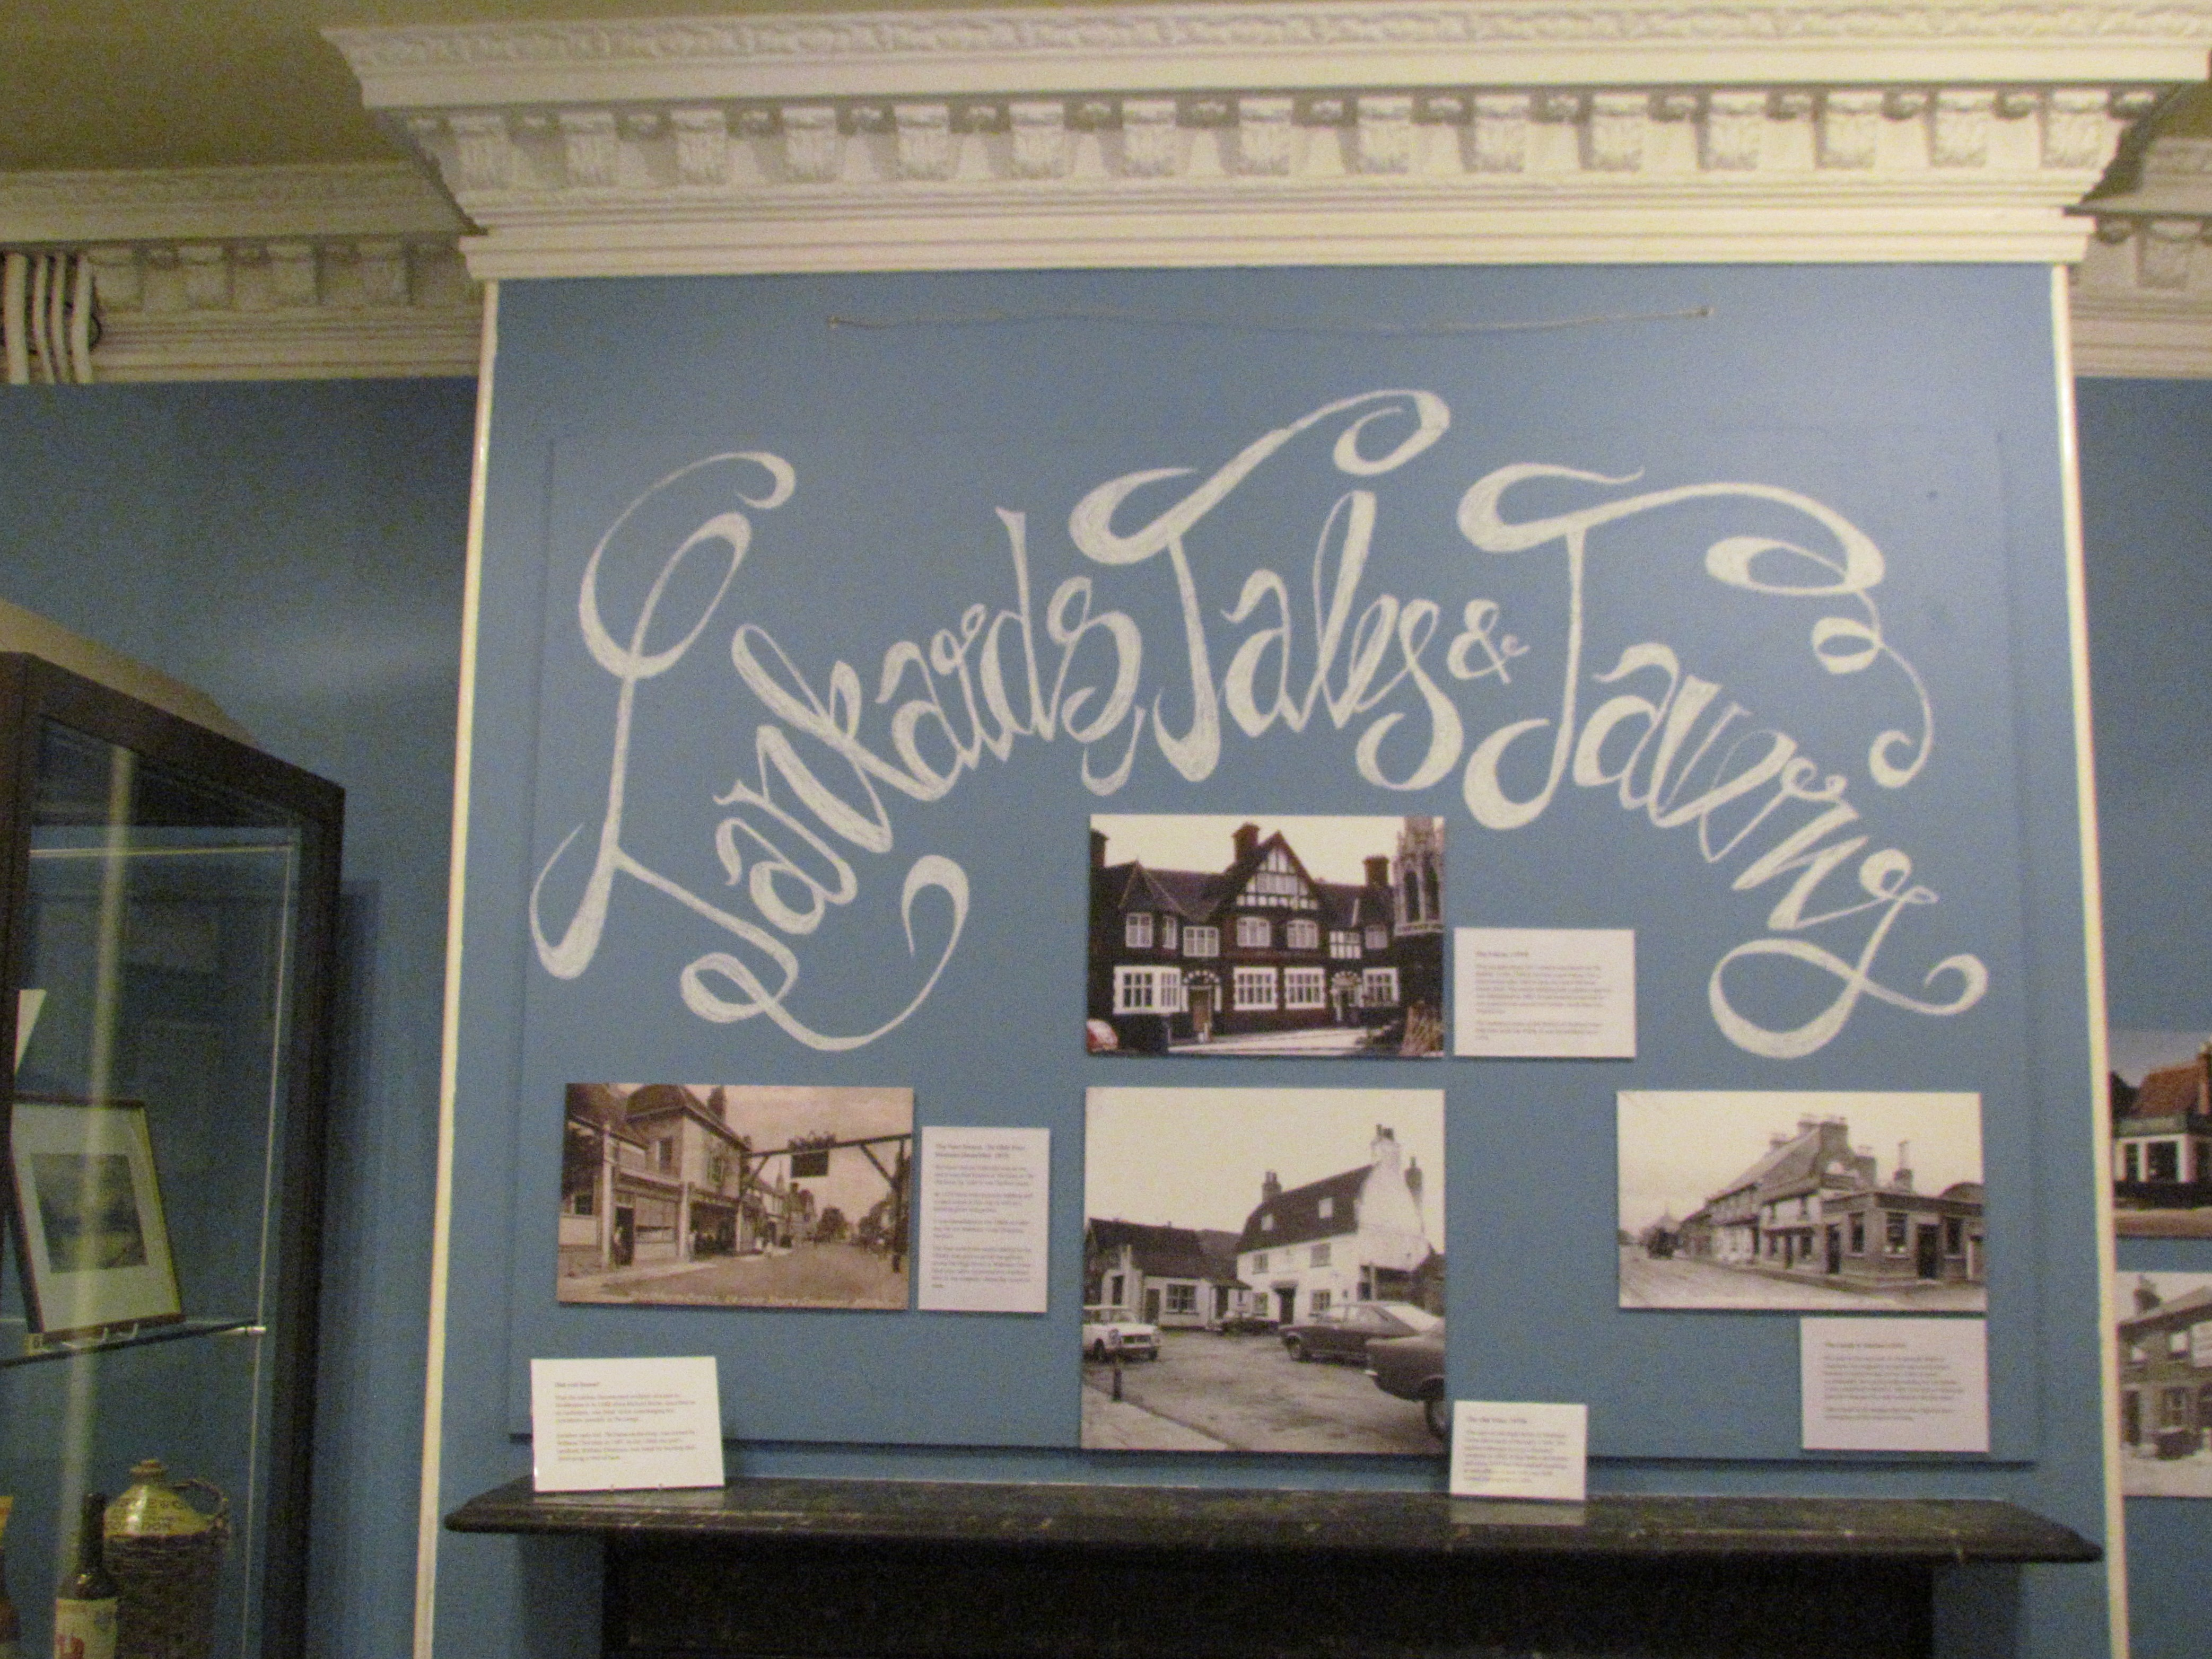 Lowewood's new exhibition - Tankards, Tales and Taverns